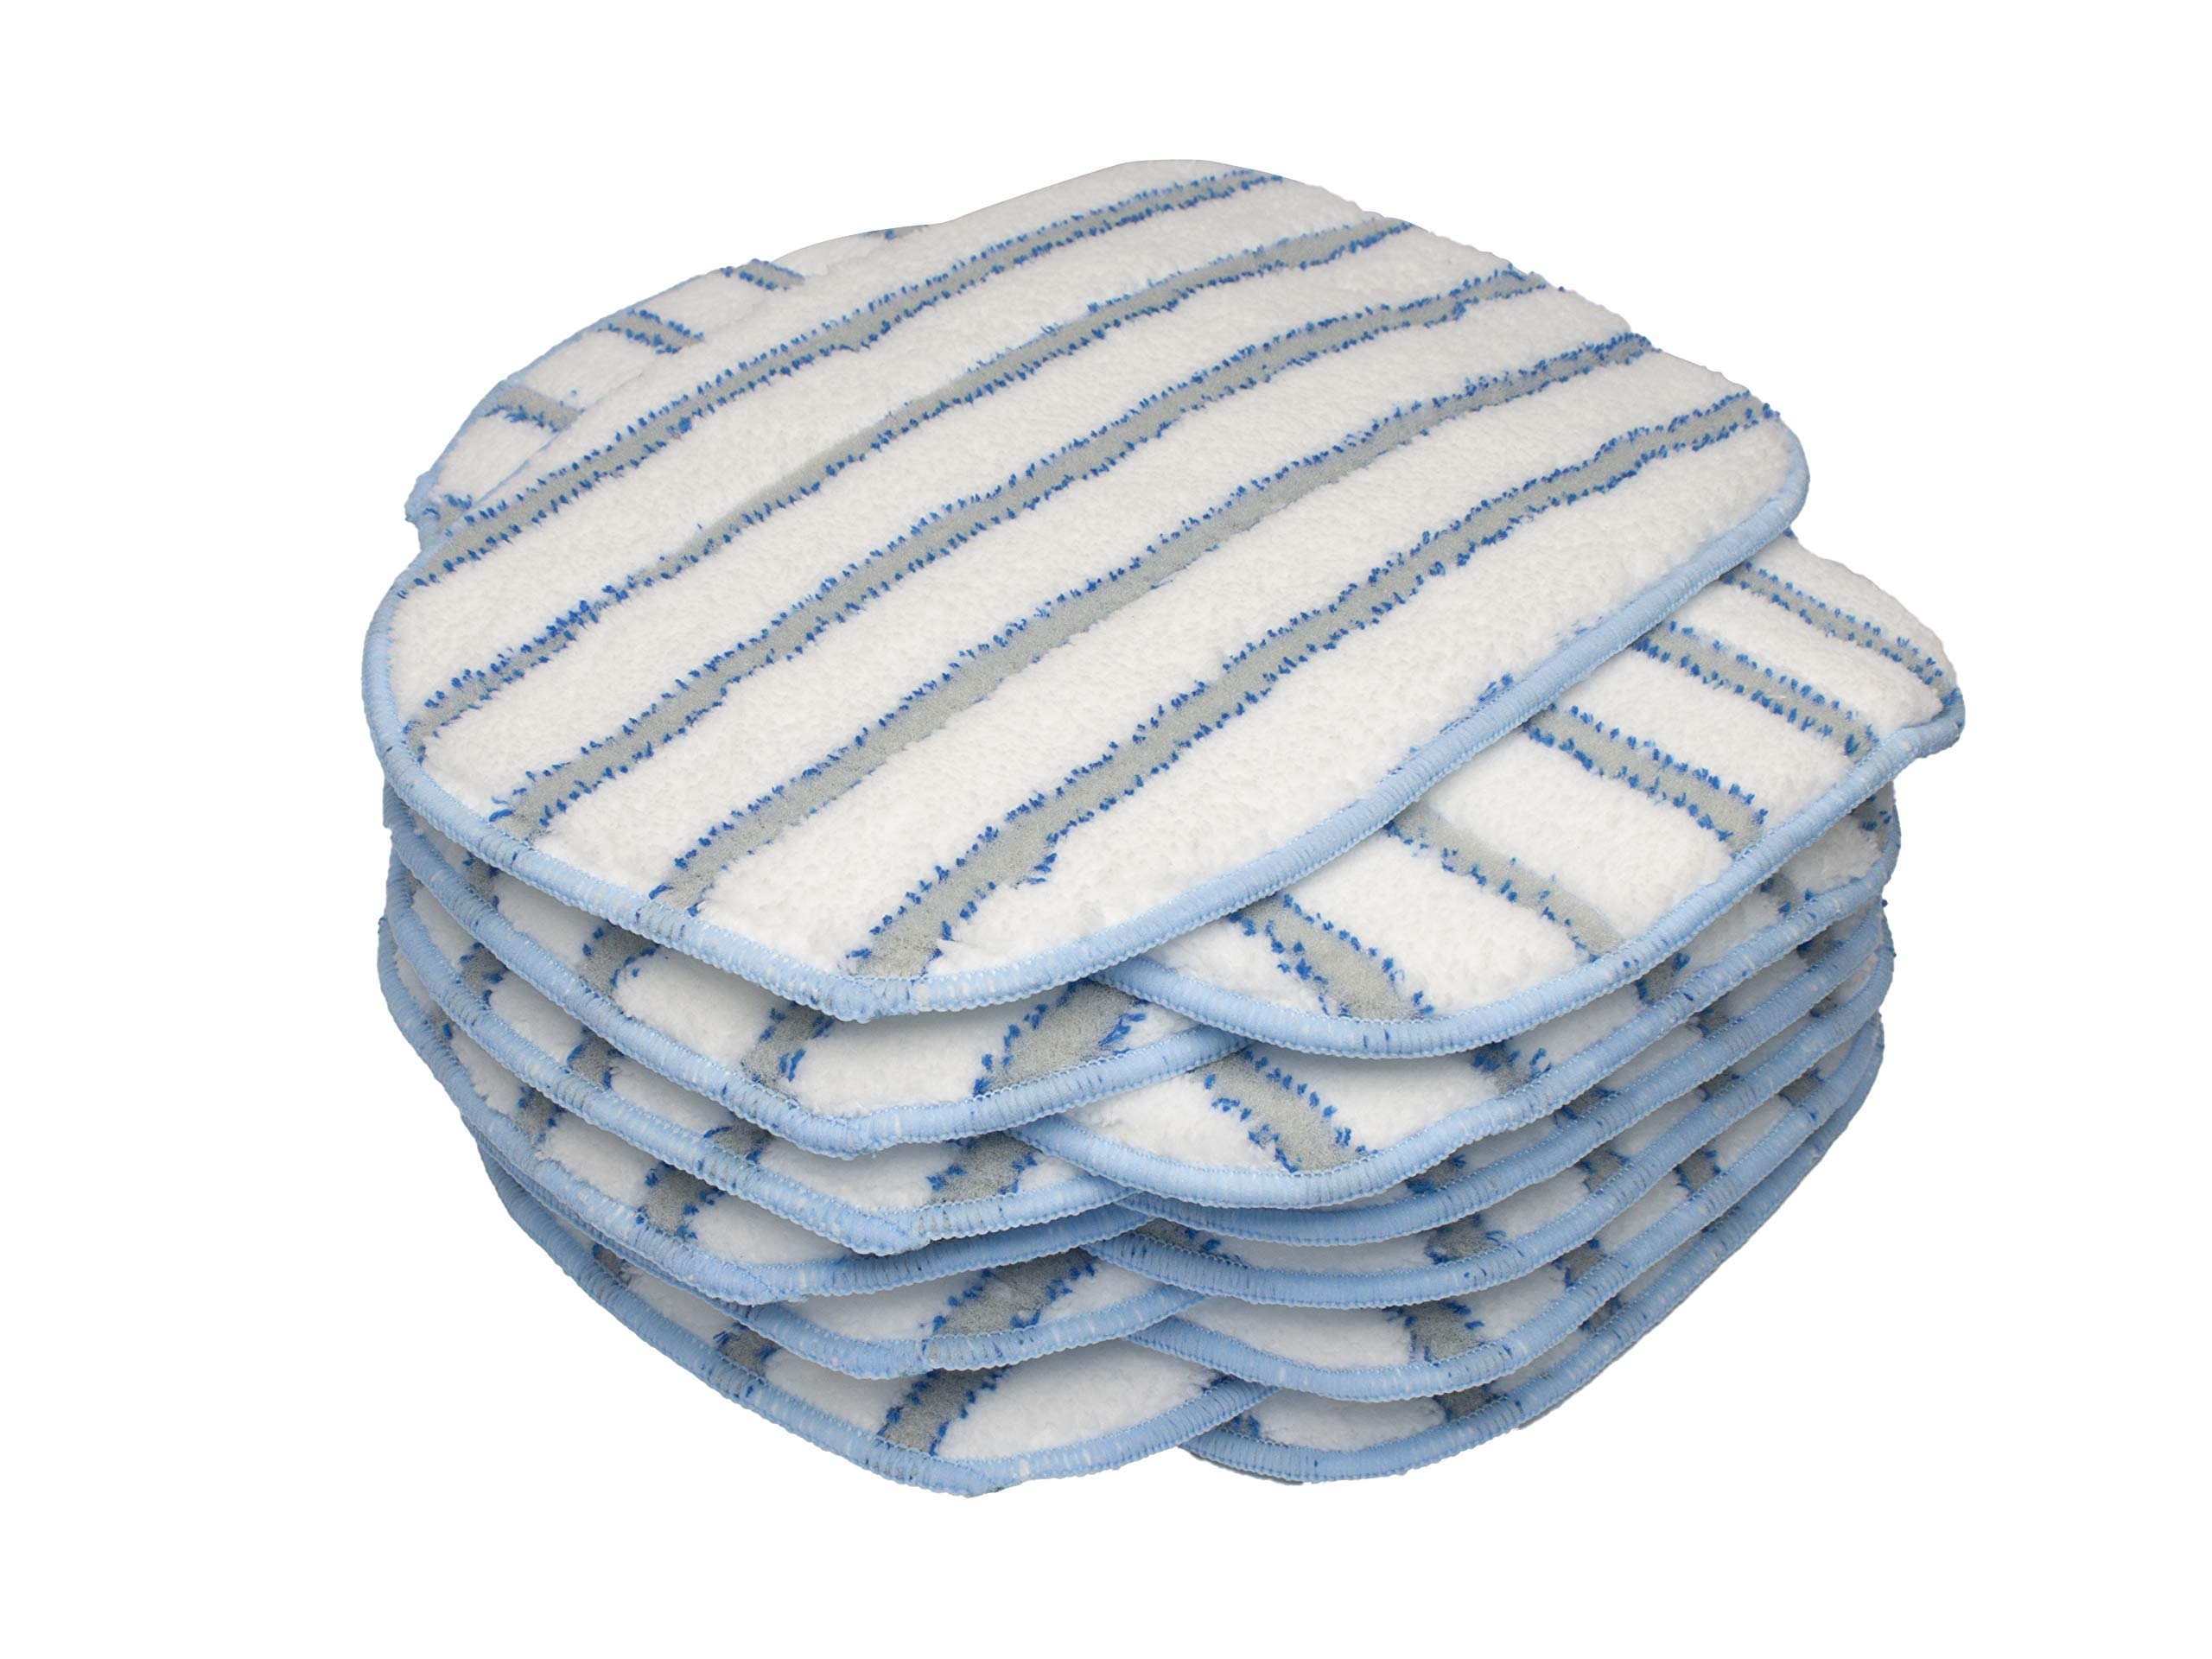 LTWHOME Microfiber Scrubbing Mop Pads Fit for McCulloch MC1375, MC1385 Steam Cleaner, Compatiable with McCulloch A1375-101(Pack of 12) by LTWHOME